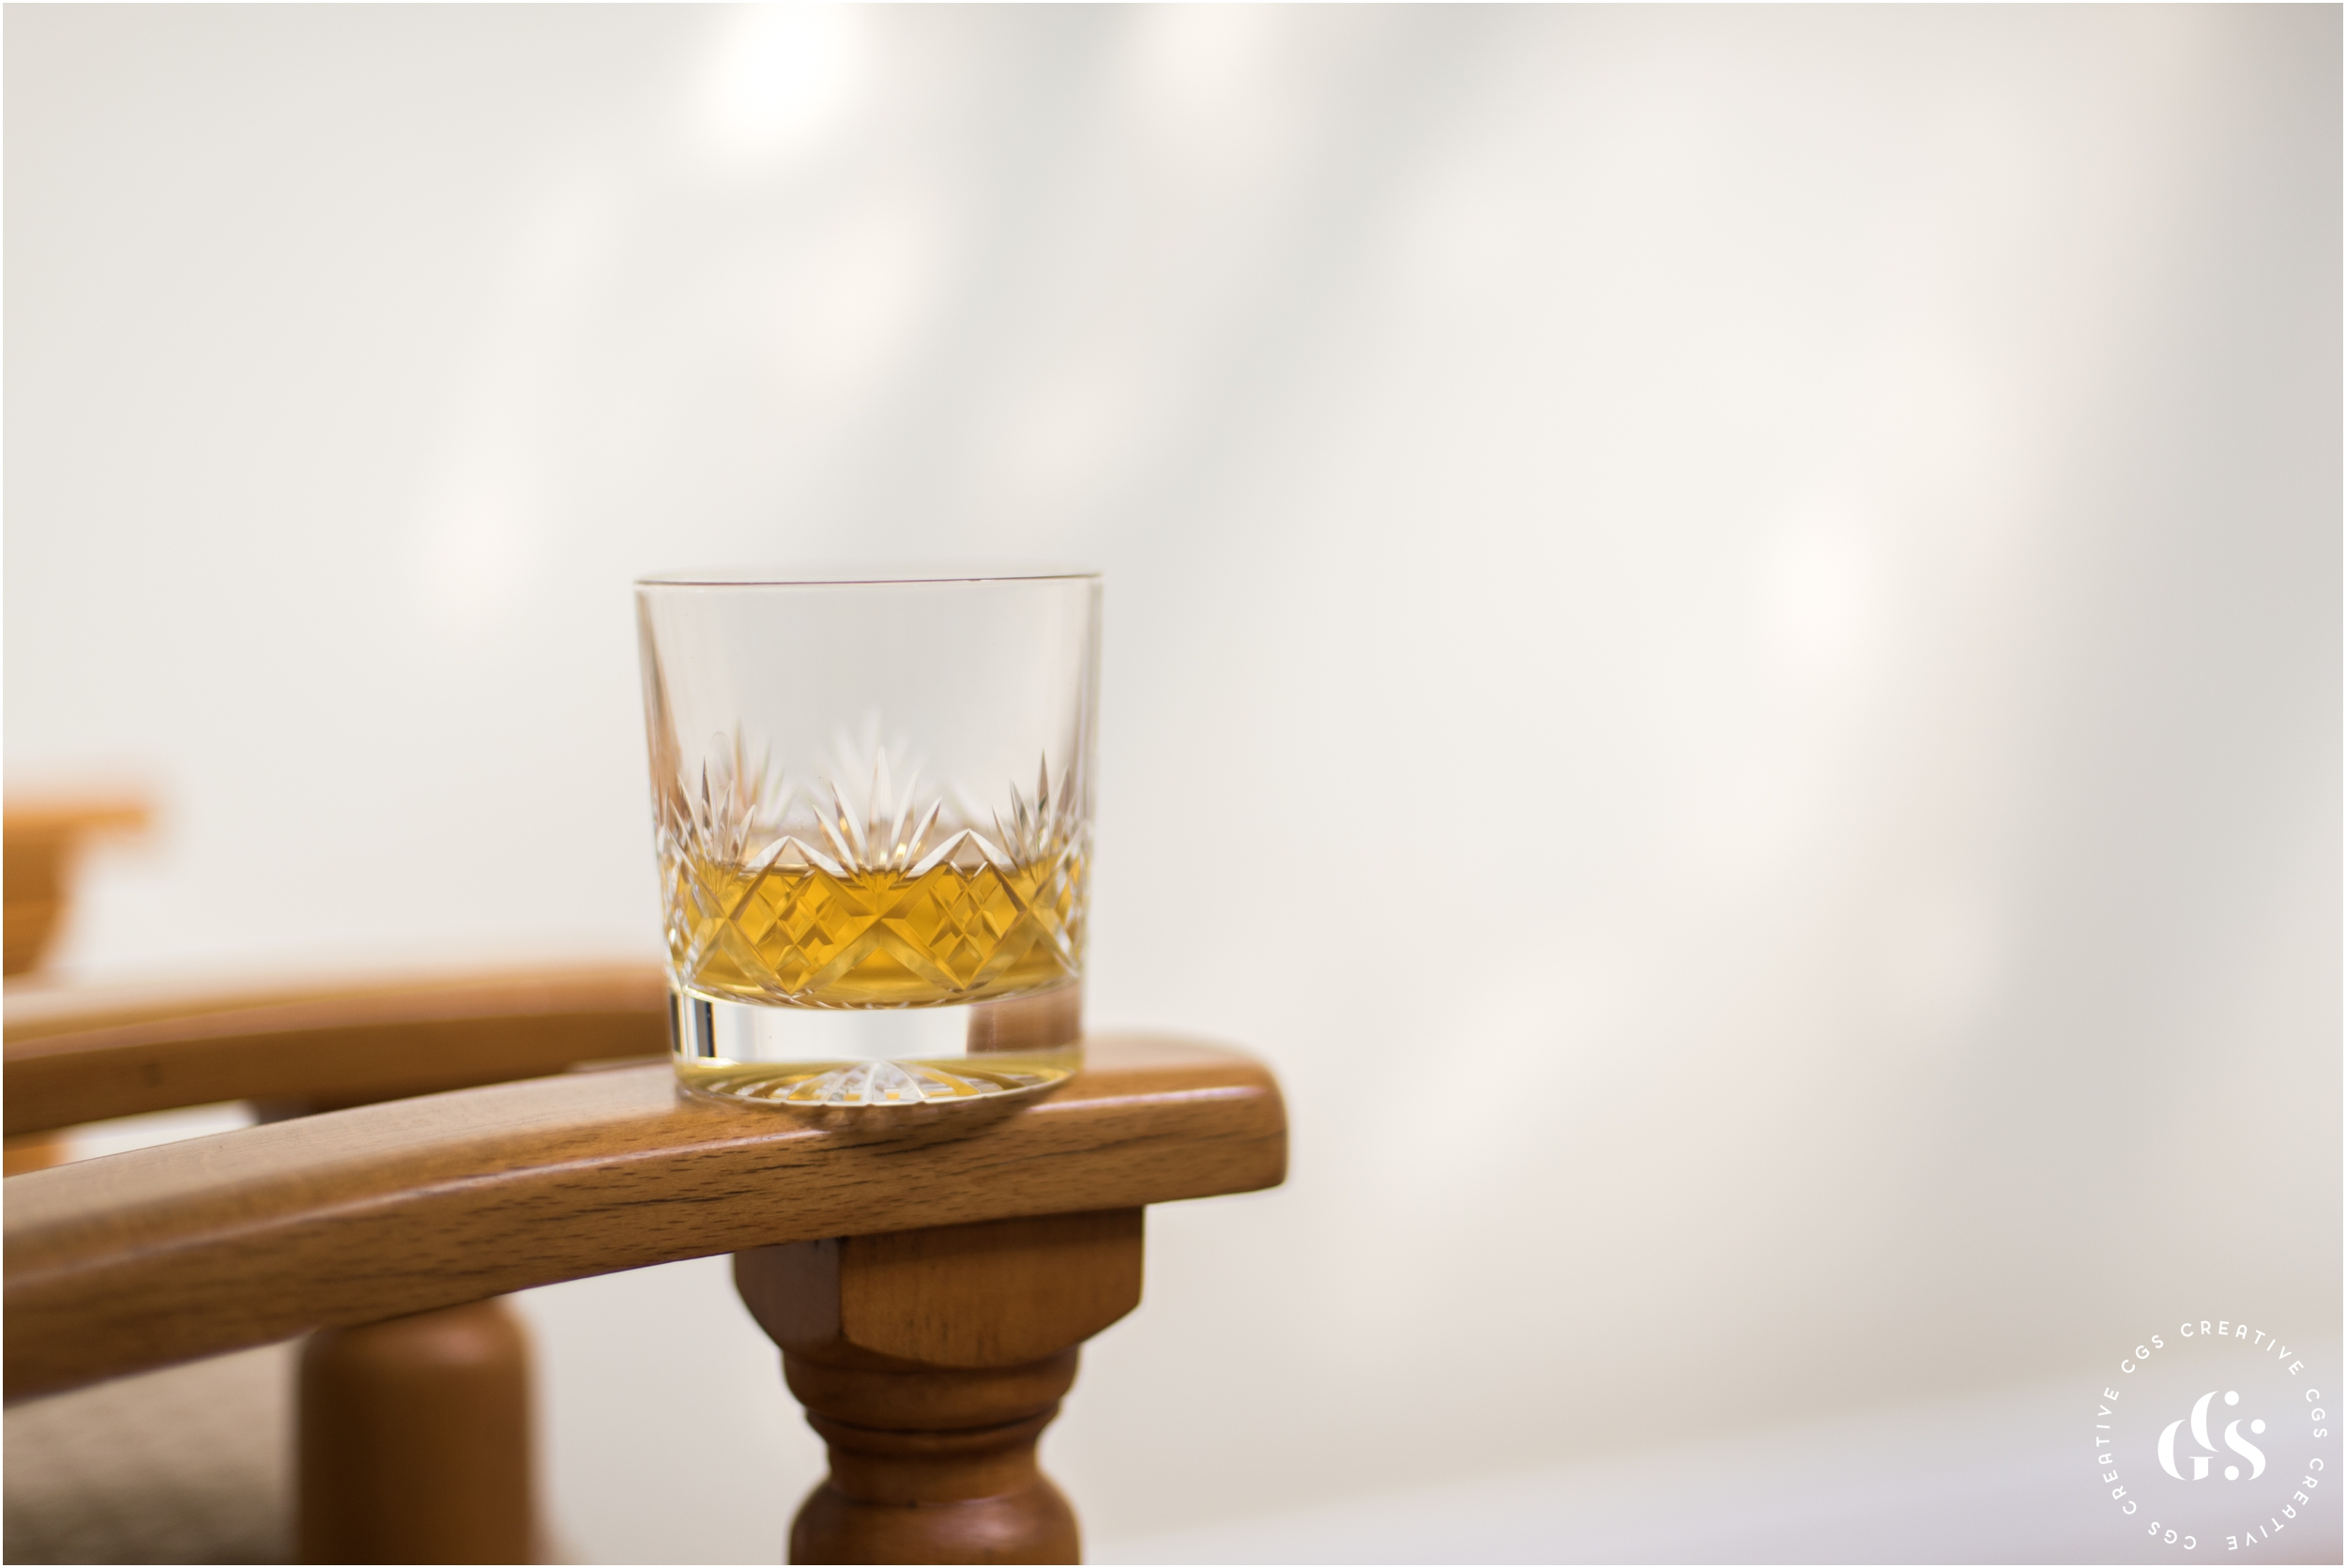 Whisky Of The Week Brand Photography by Roxy Hutton of CGScreative (268 of 307).JPG